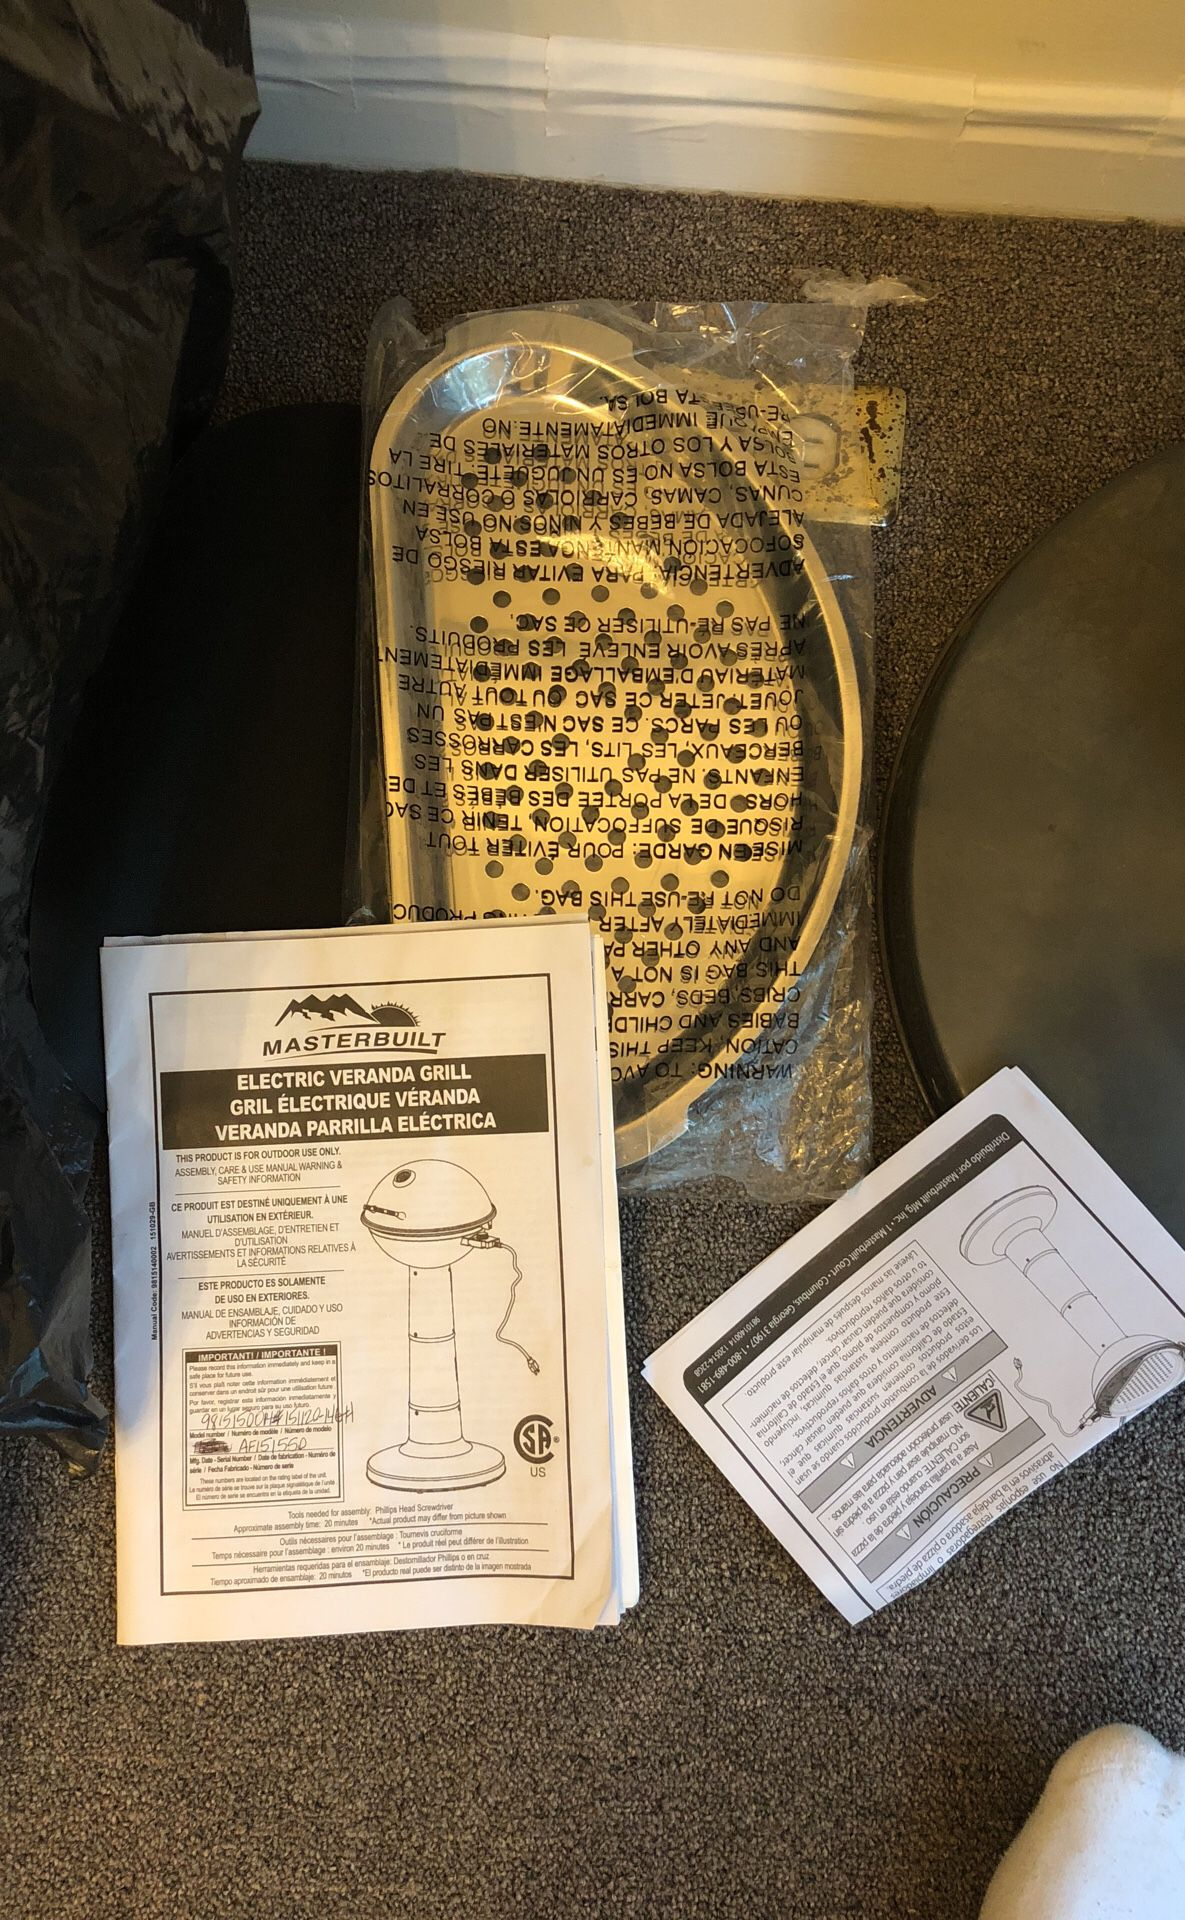 Master built Electric Grill